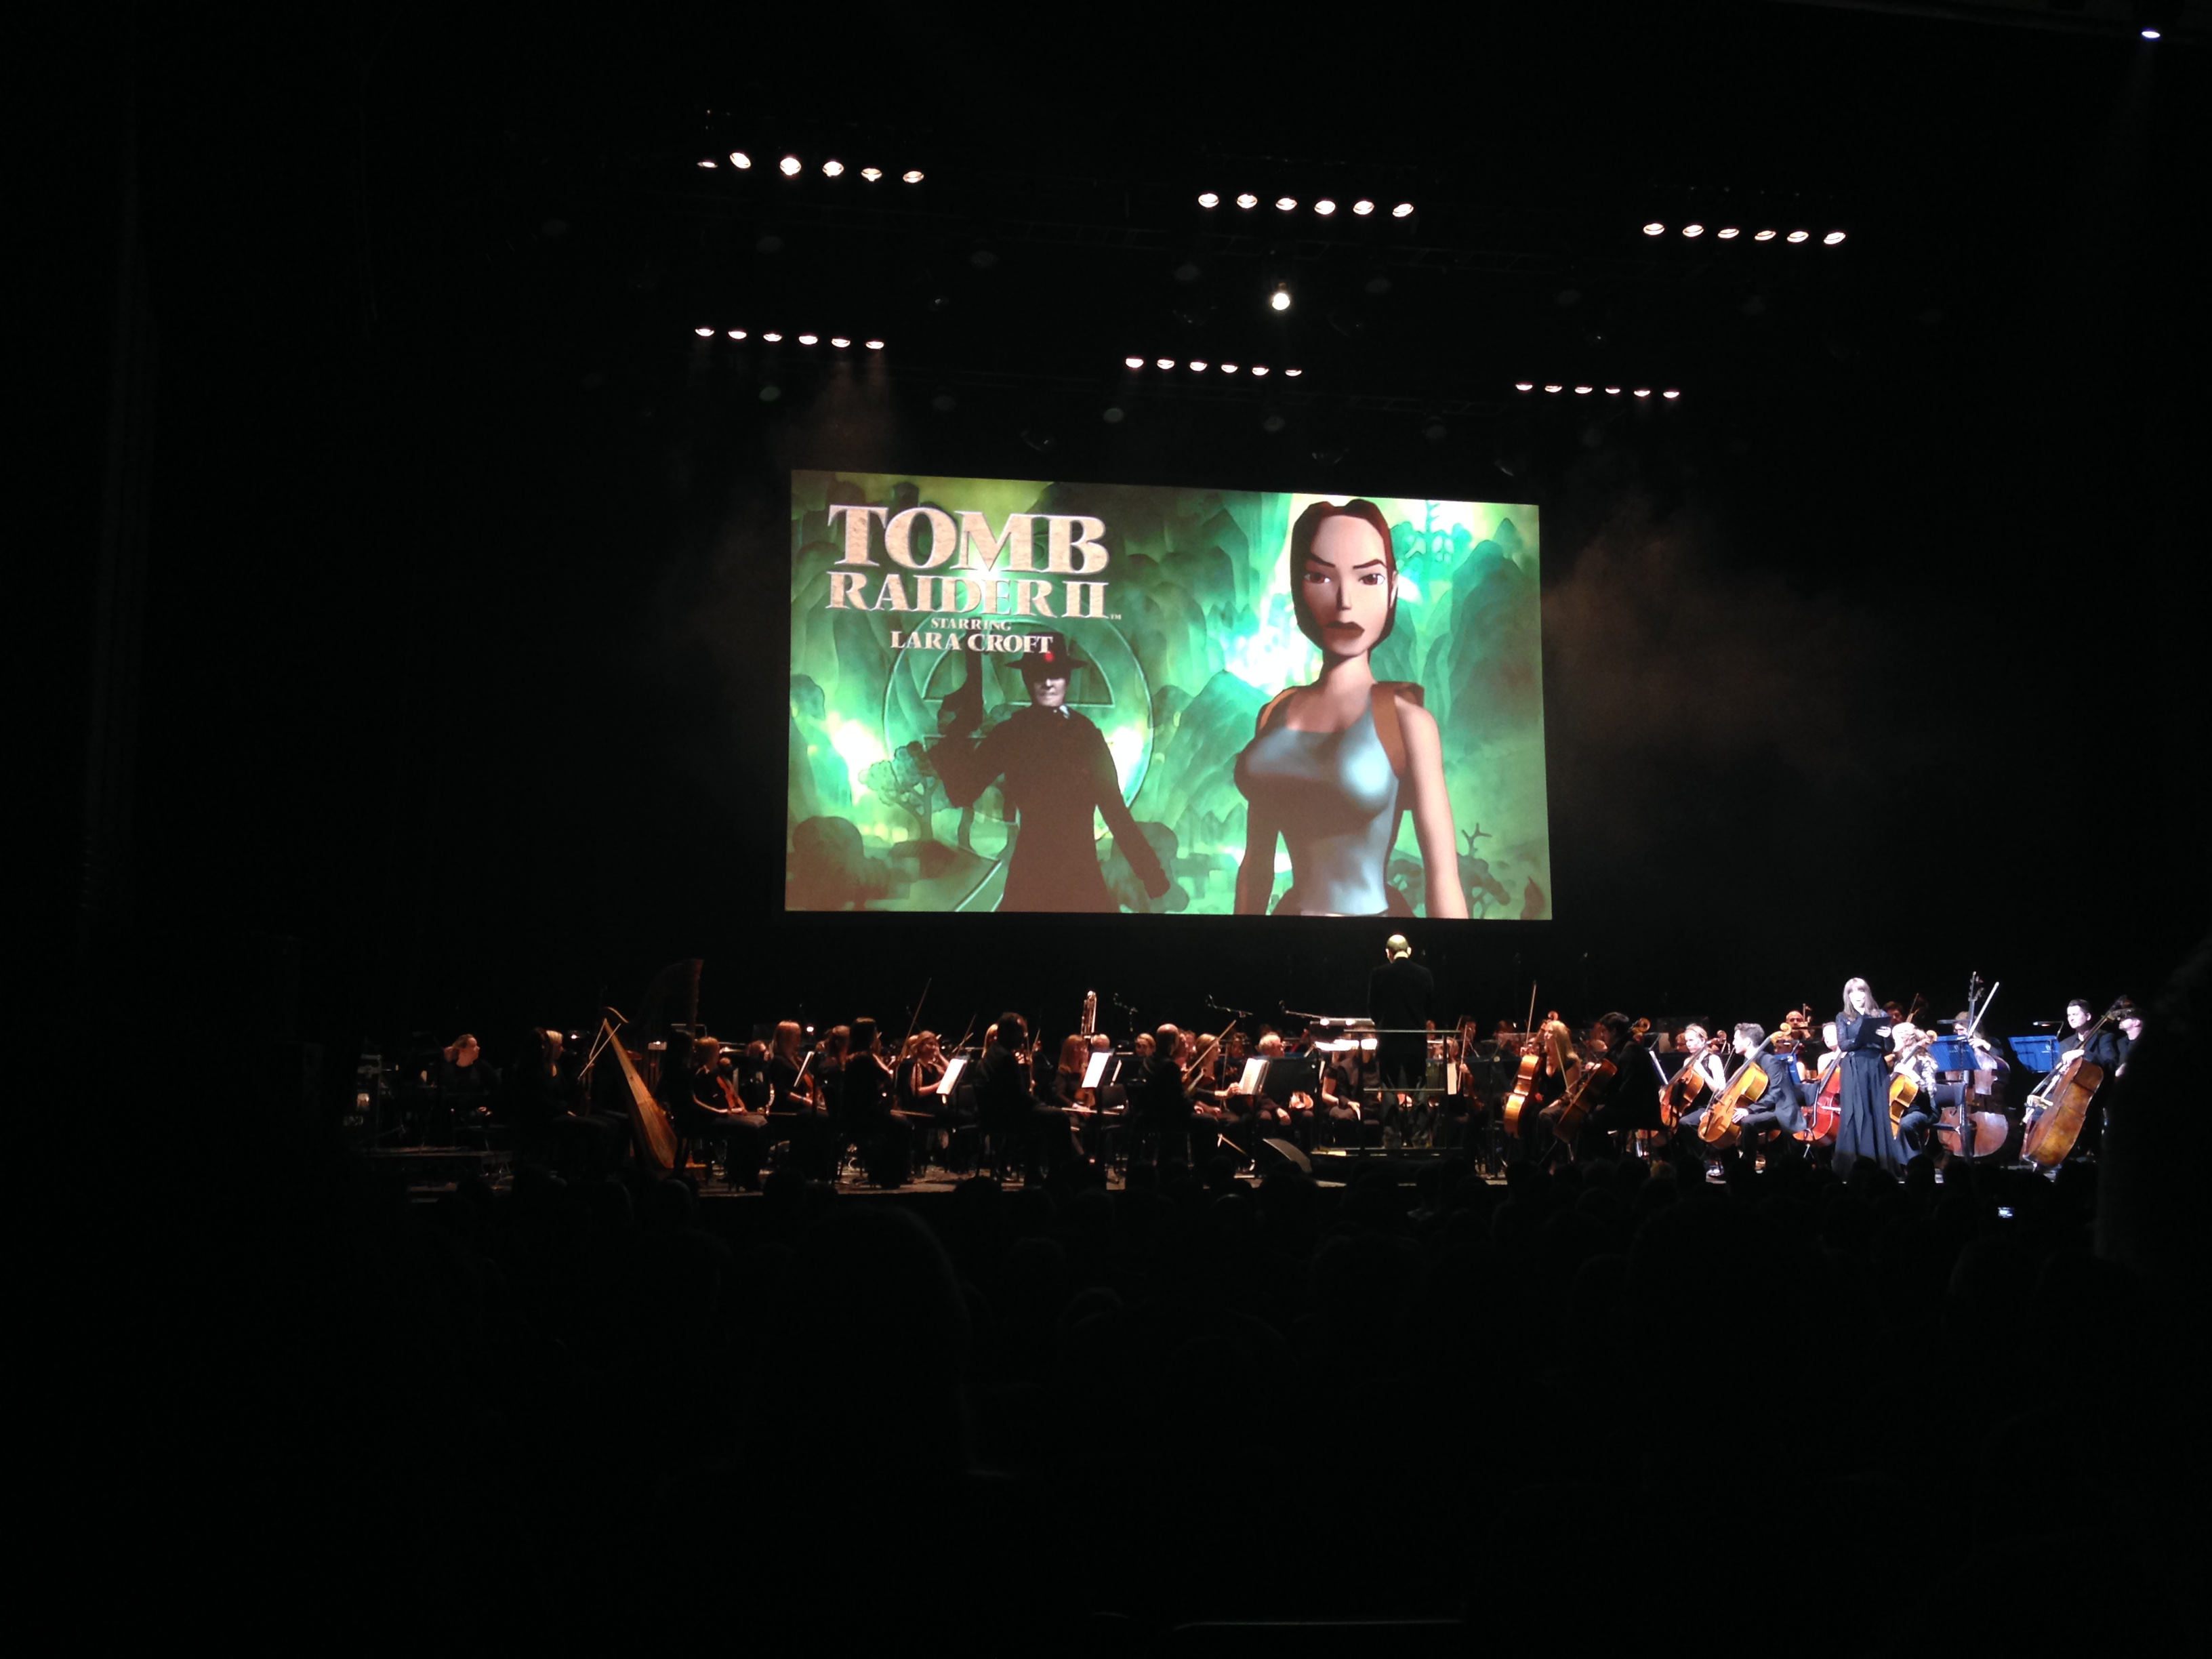 Tomb Raider Live in Concert, London